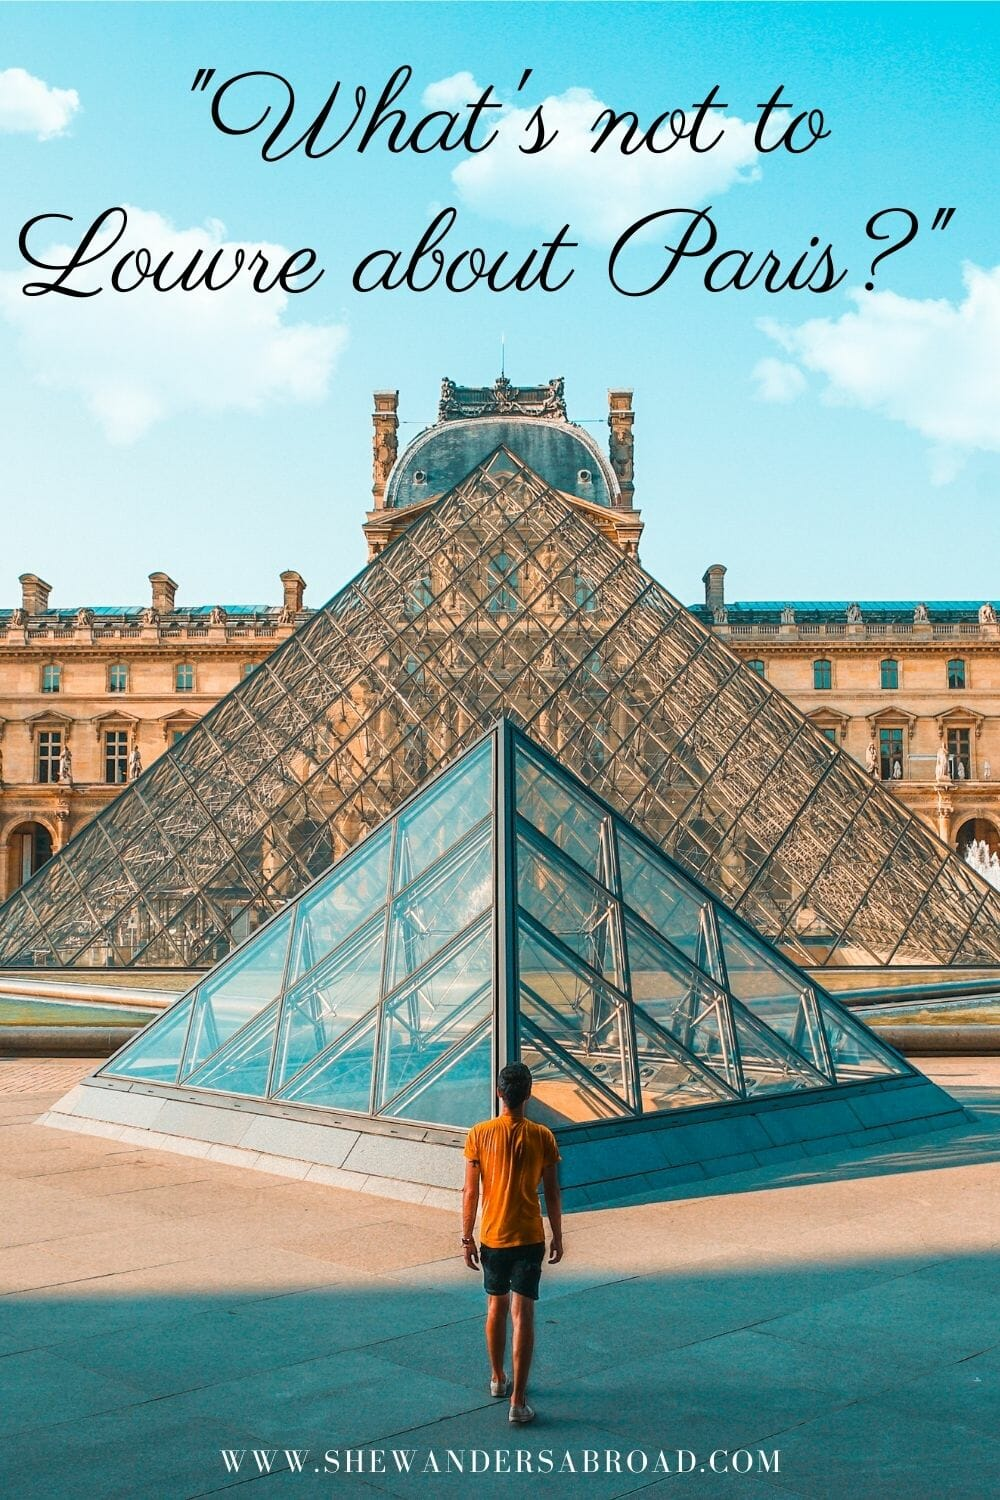 Paris quotes and captions